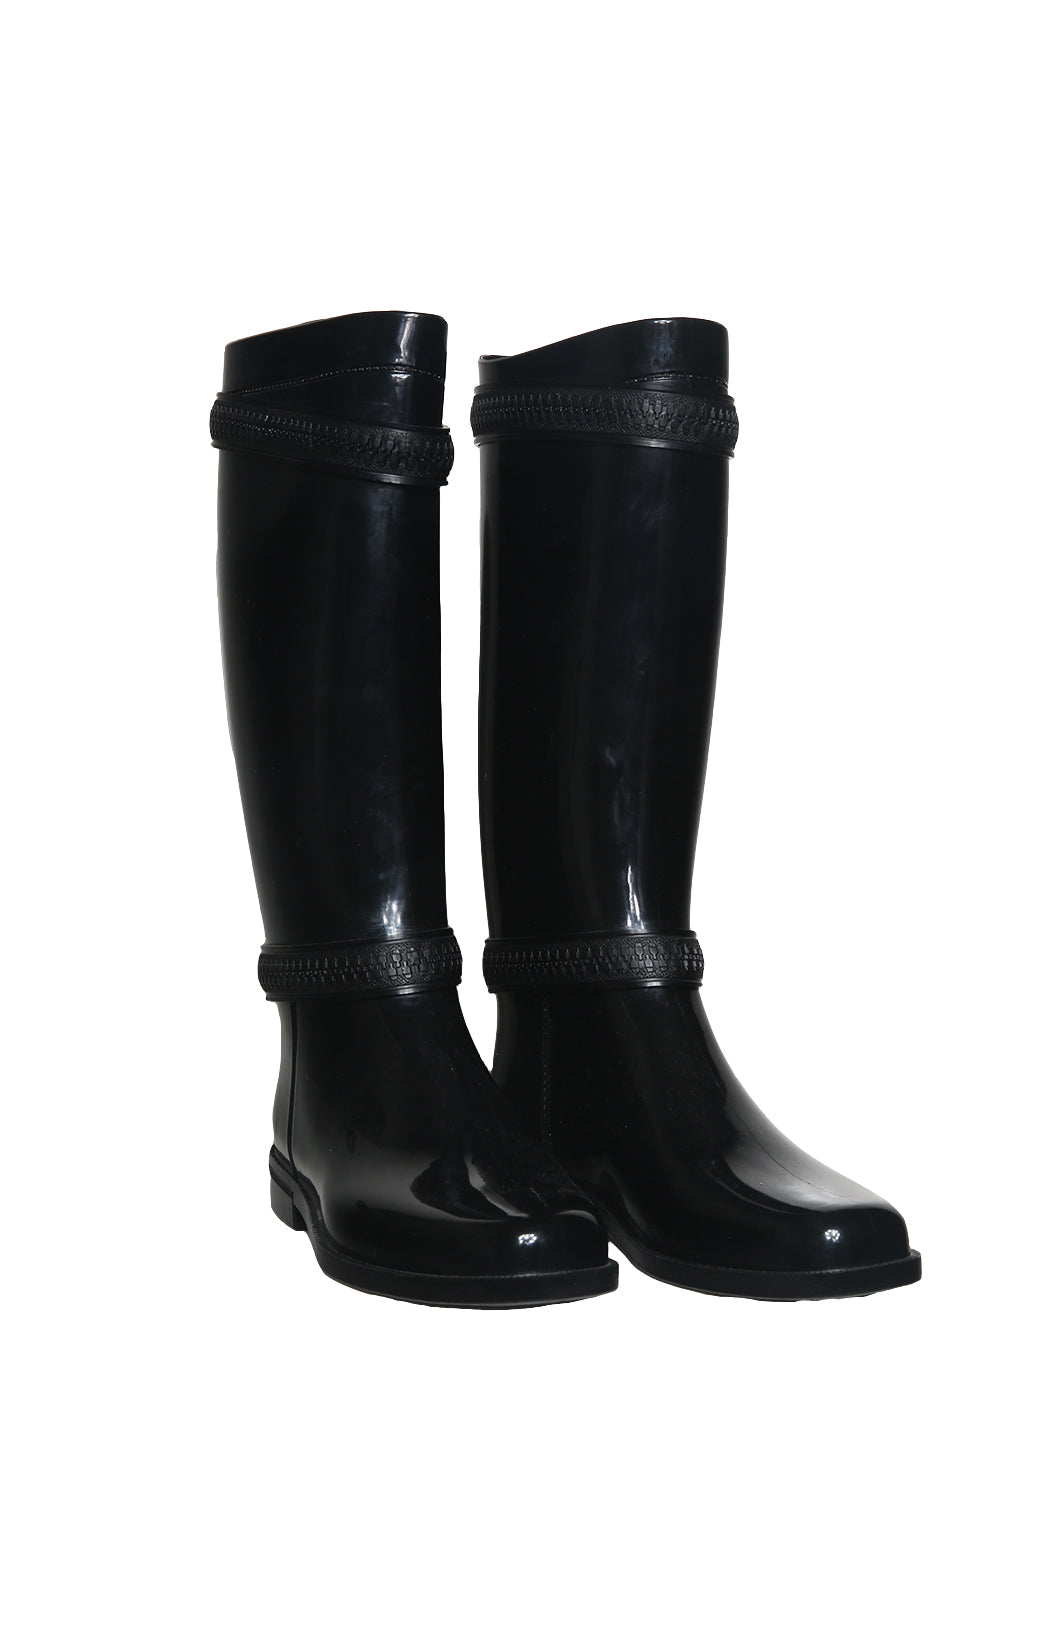 Front view of GIVENCHY  Rain Boots Size: 39 (US 9)